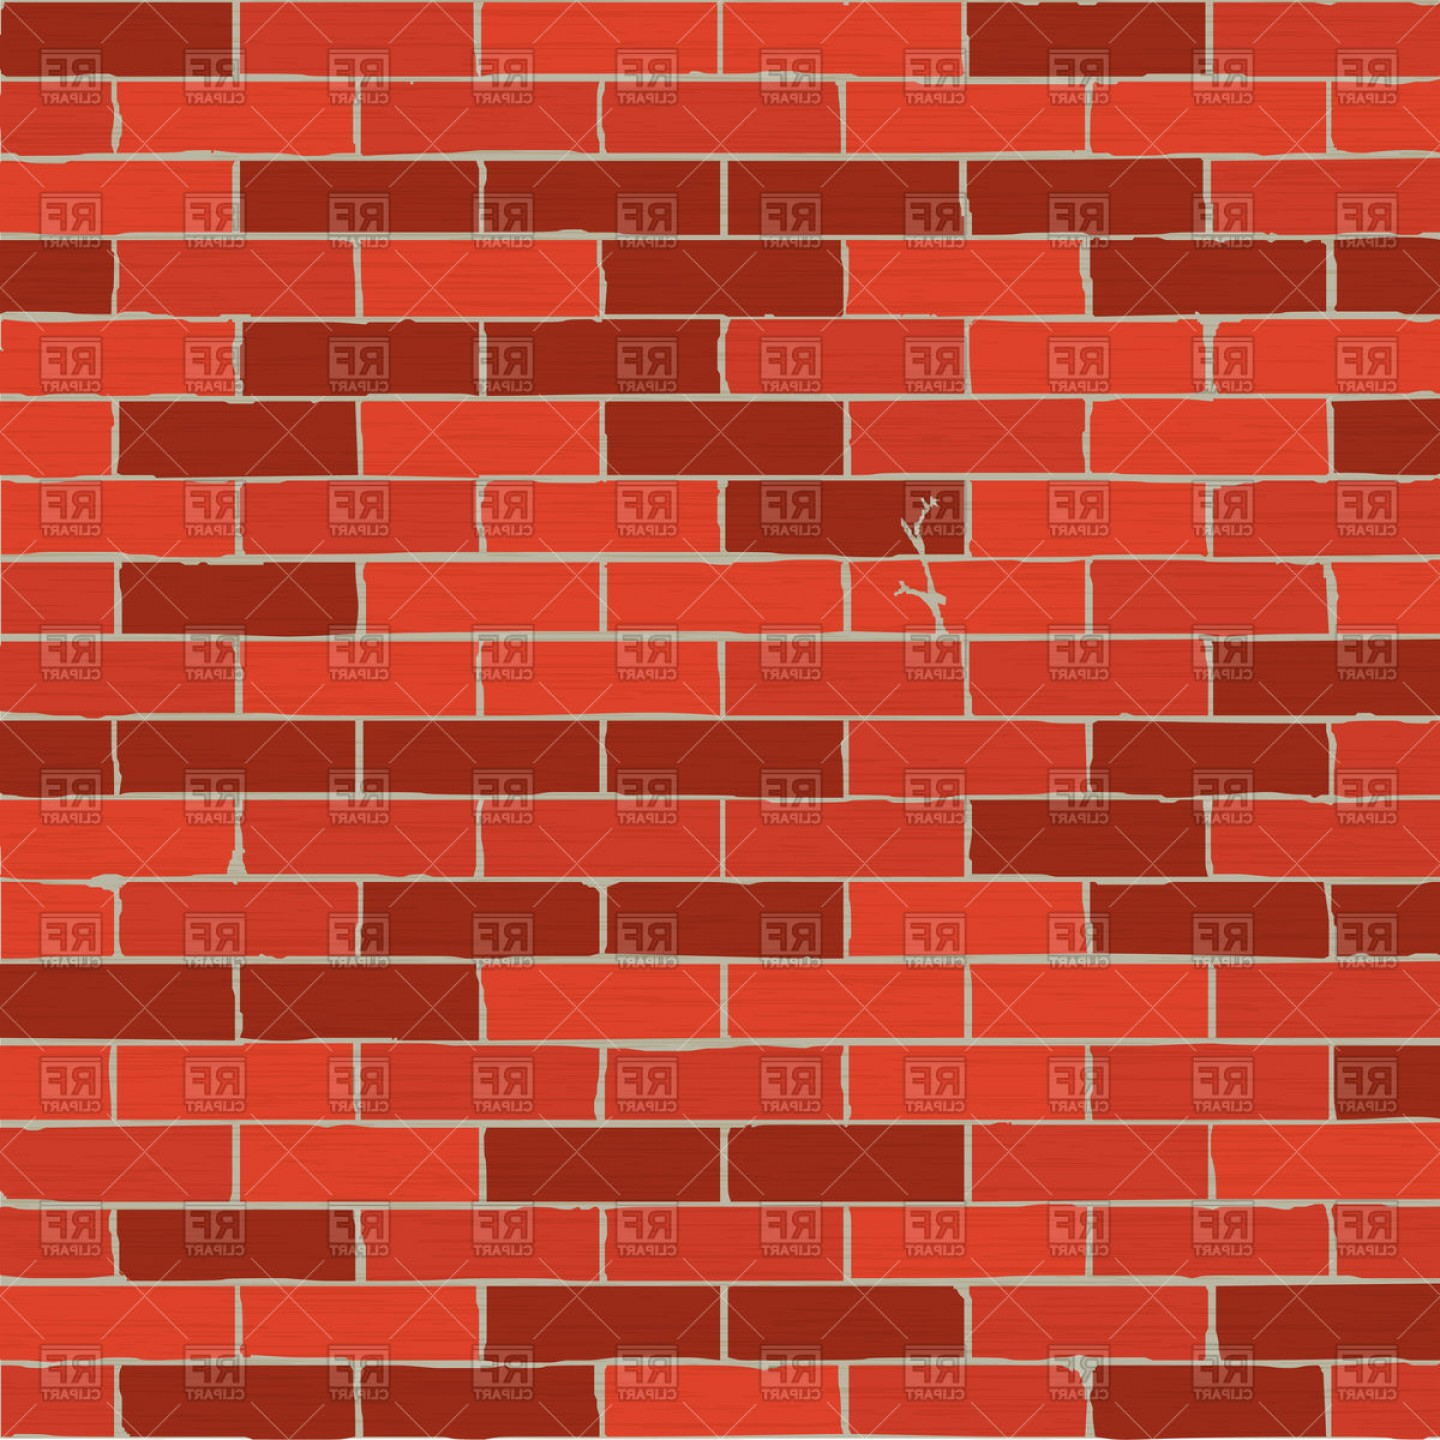 Brickwall clipart